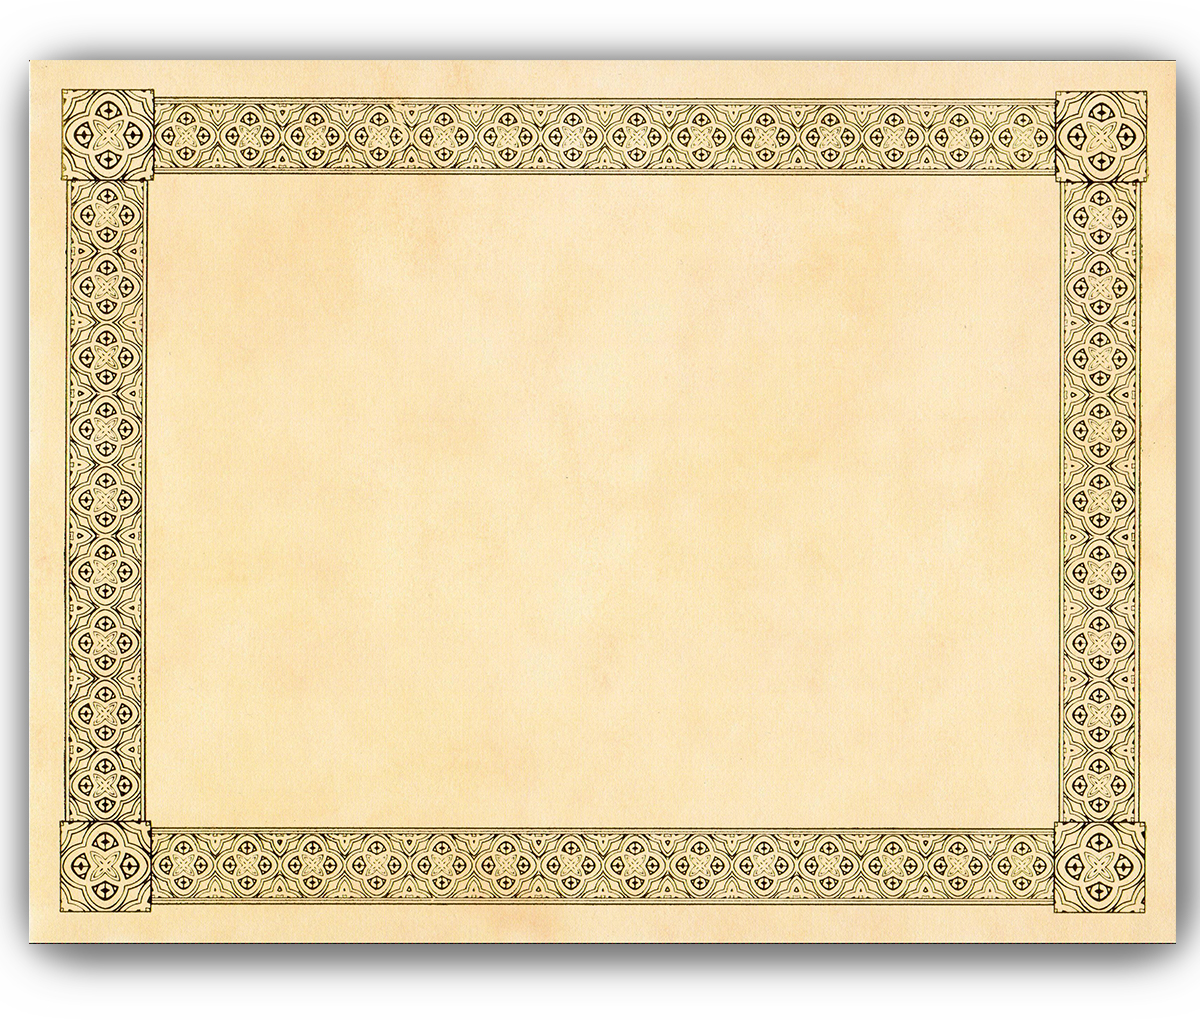 picture about Printable Gold Paper referred to as Gold Foil Parchment Certification Paper - 15 Depend [DP77743] : Designer Papers ornamental printer paper Printable Paper Xmas stationery